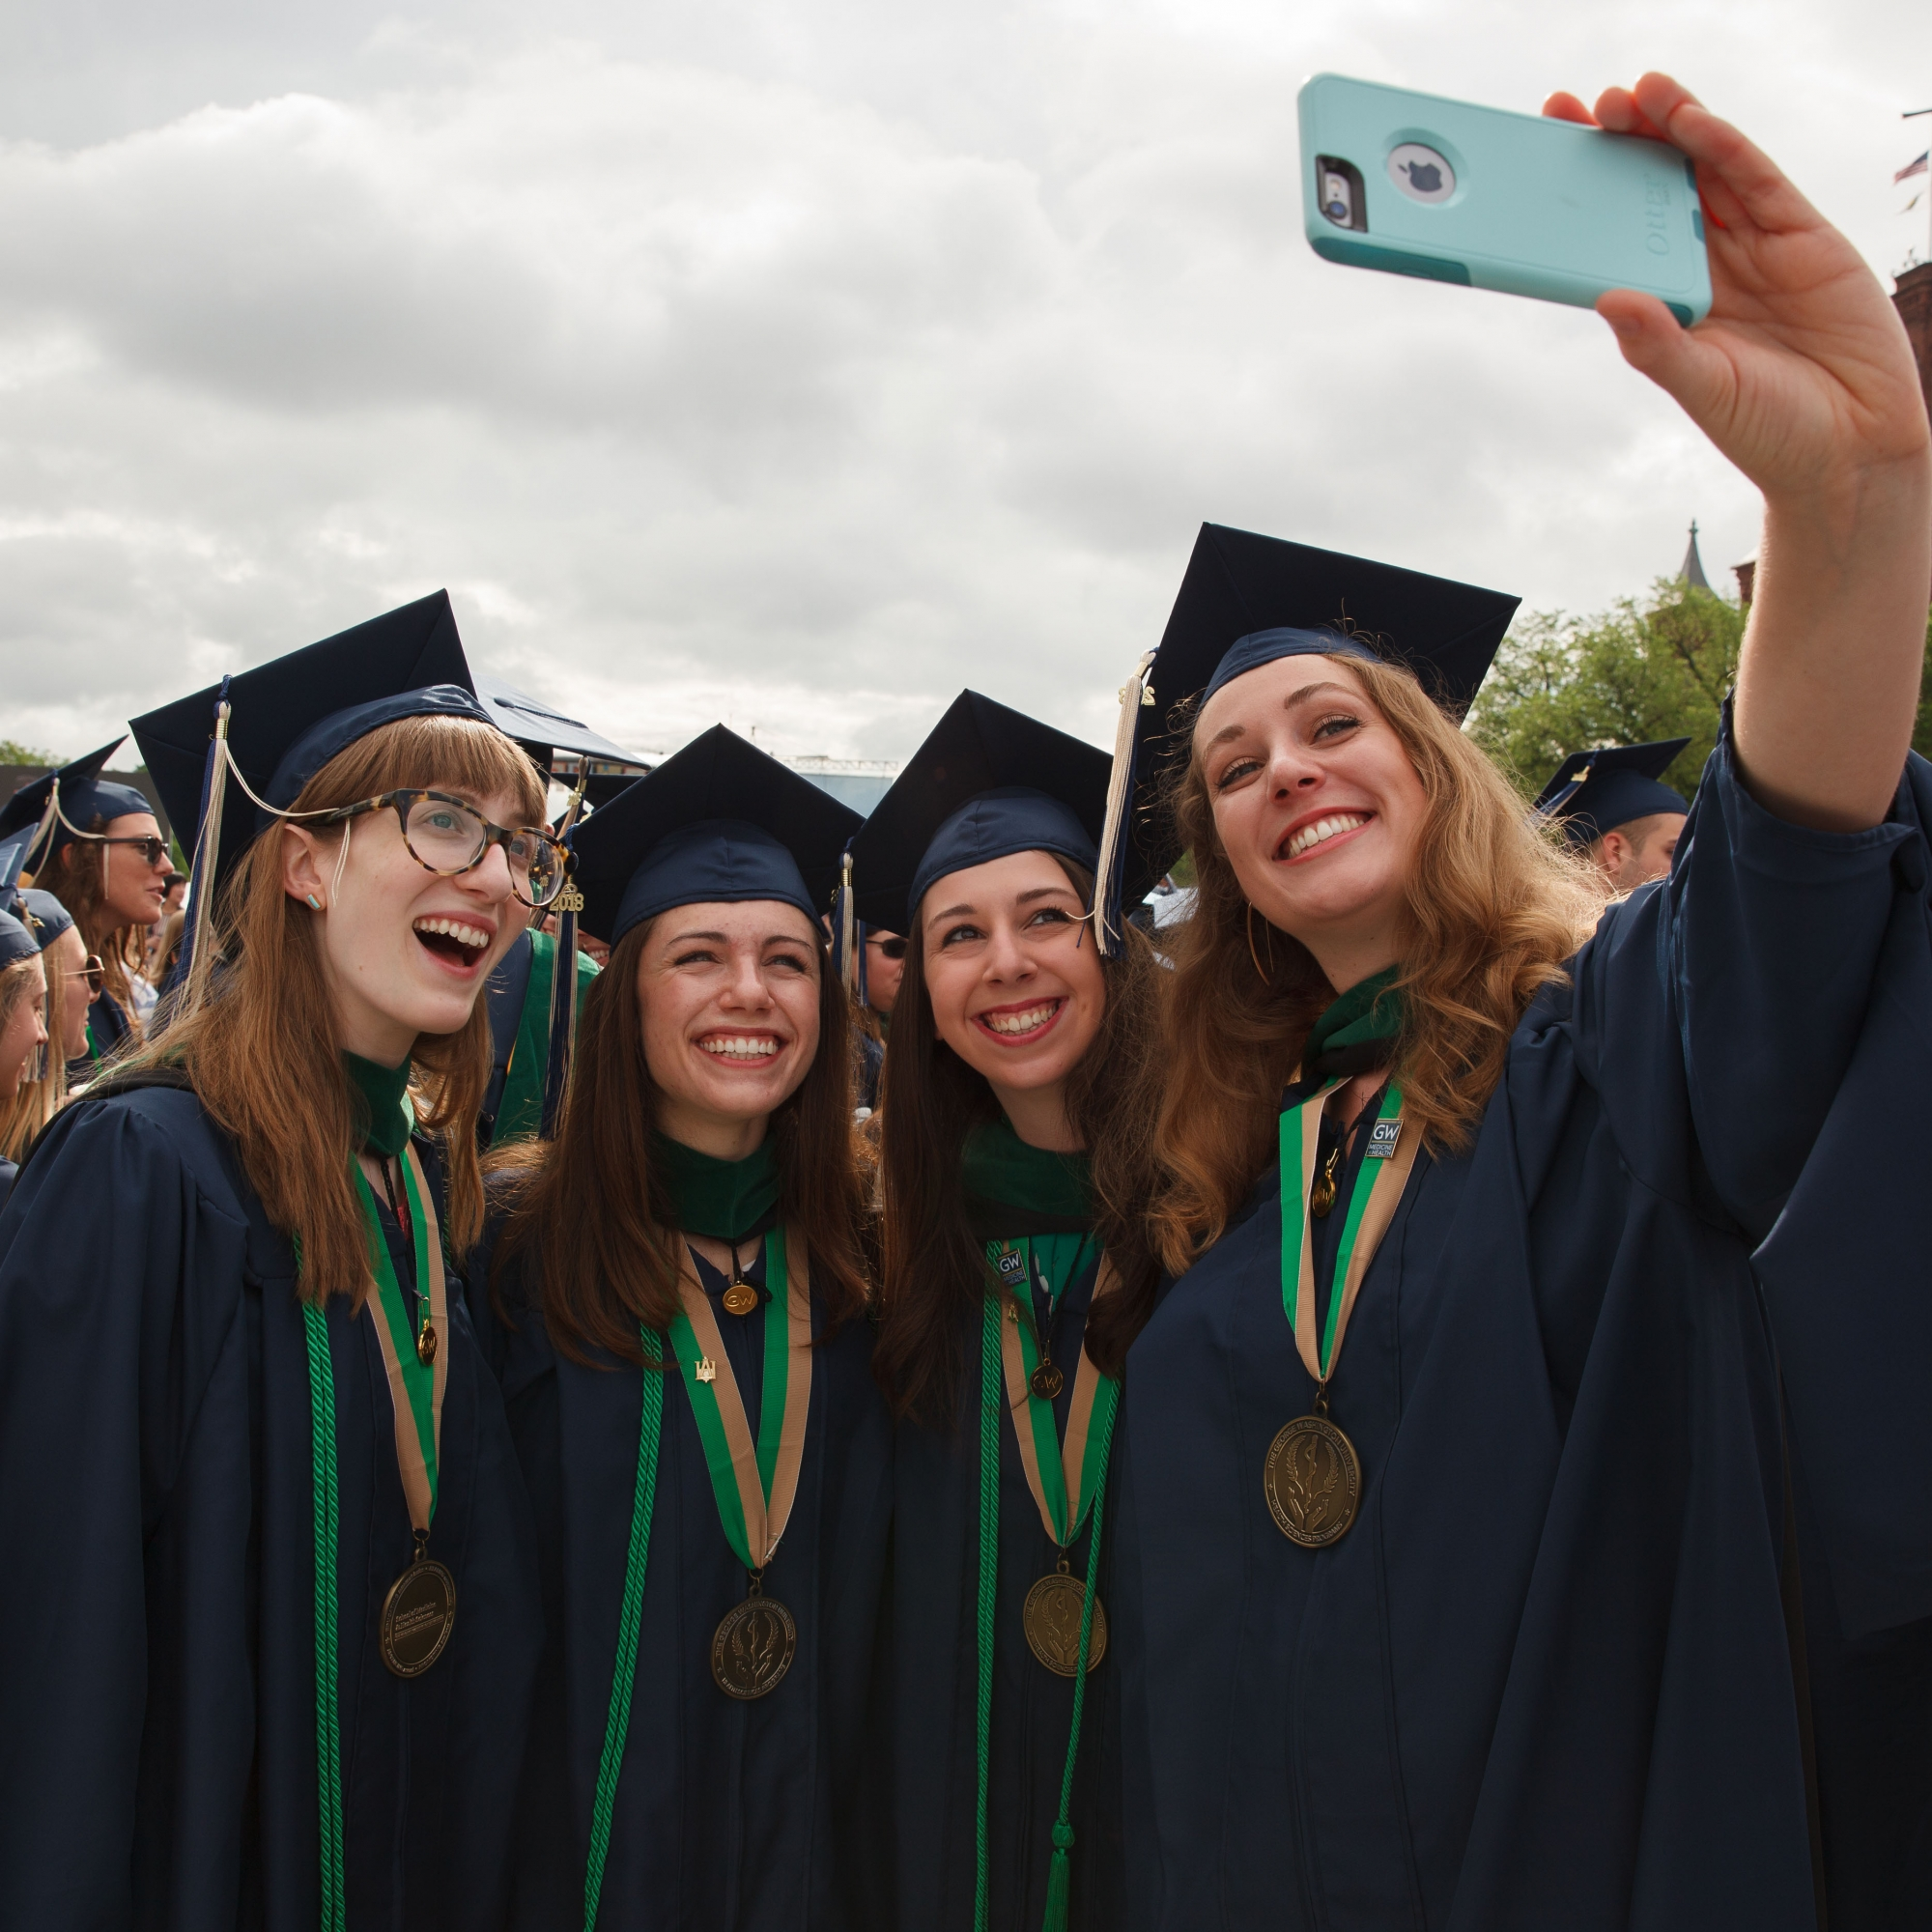 A group of women in Commencement regalia taking a selfie and smiling